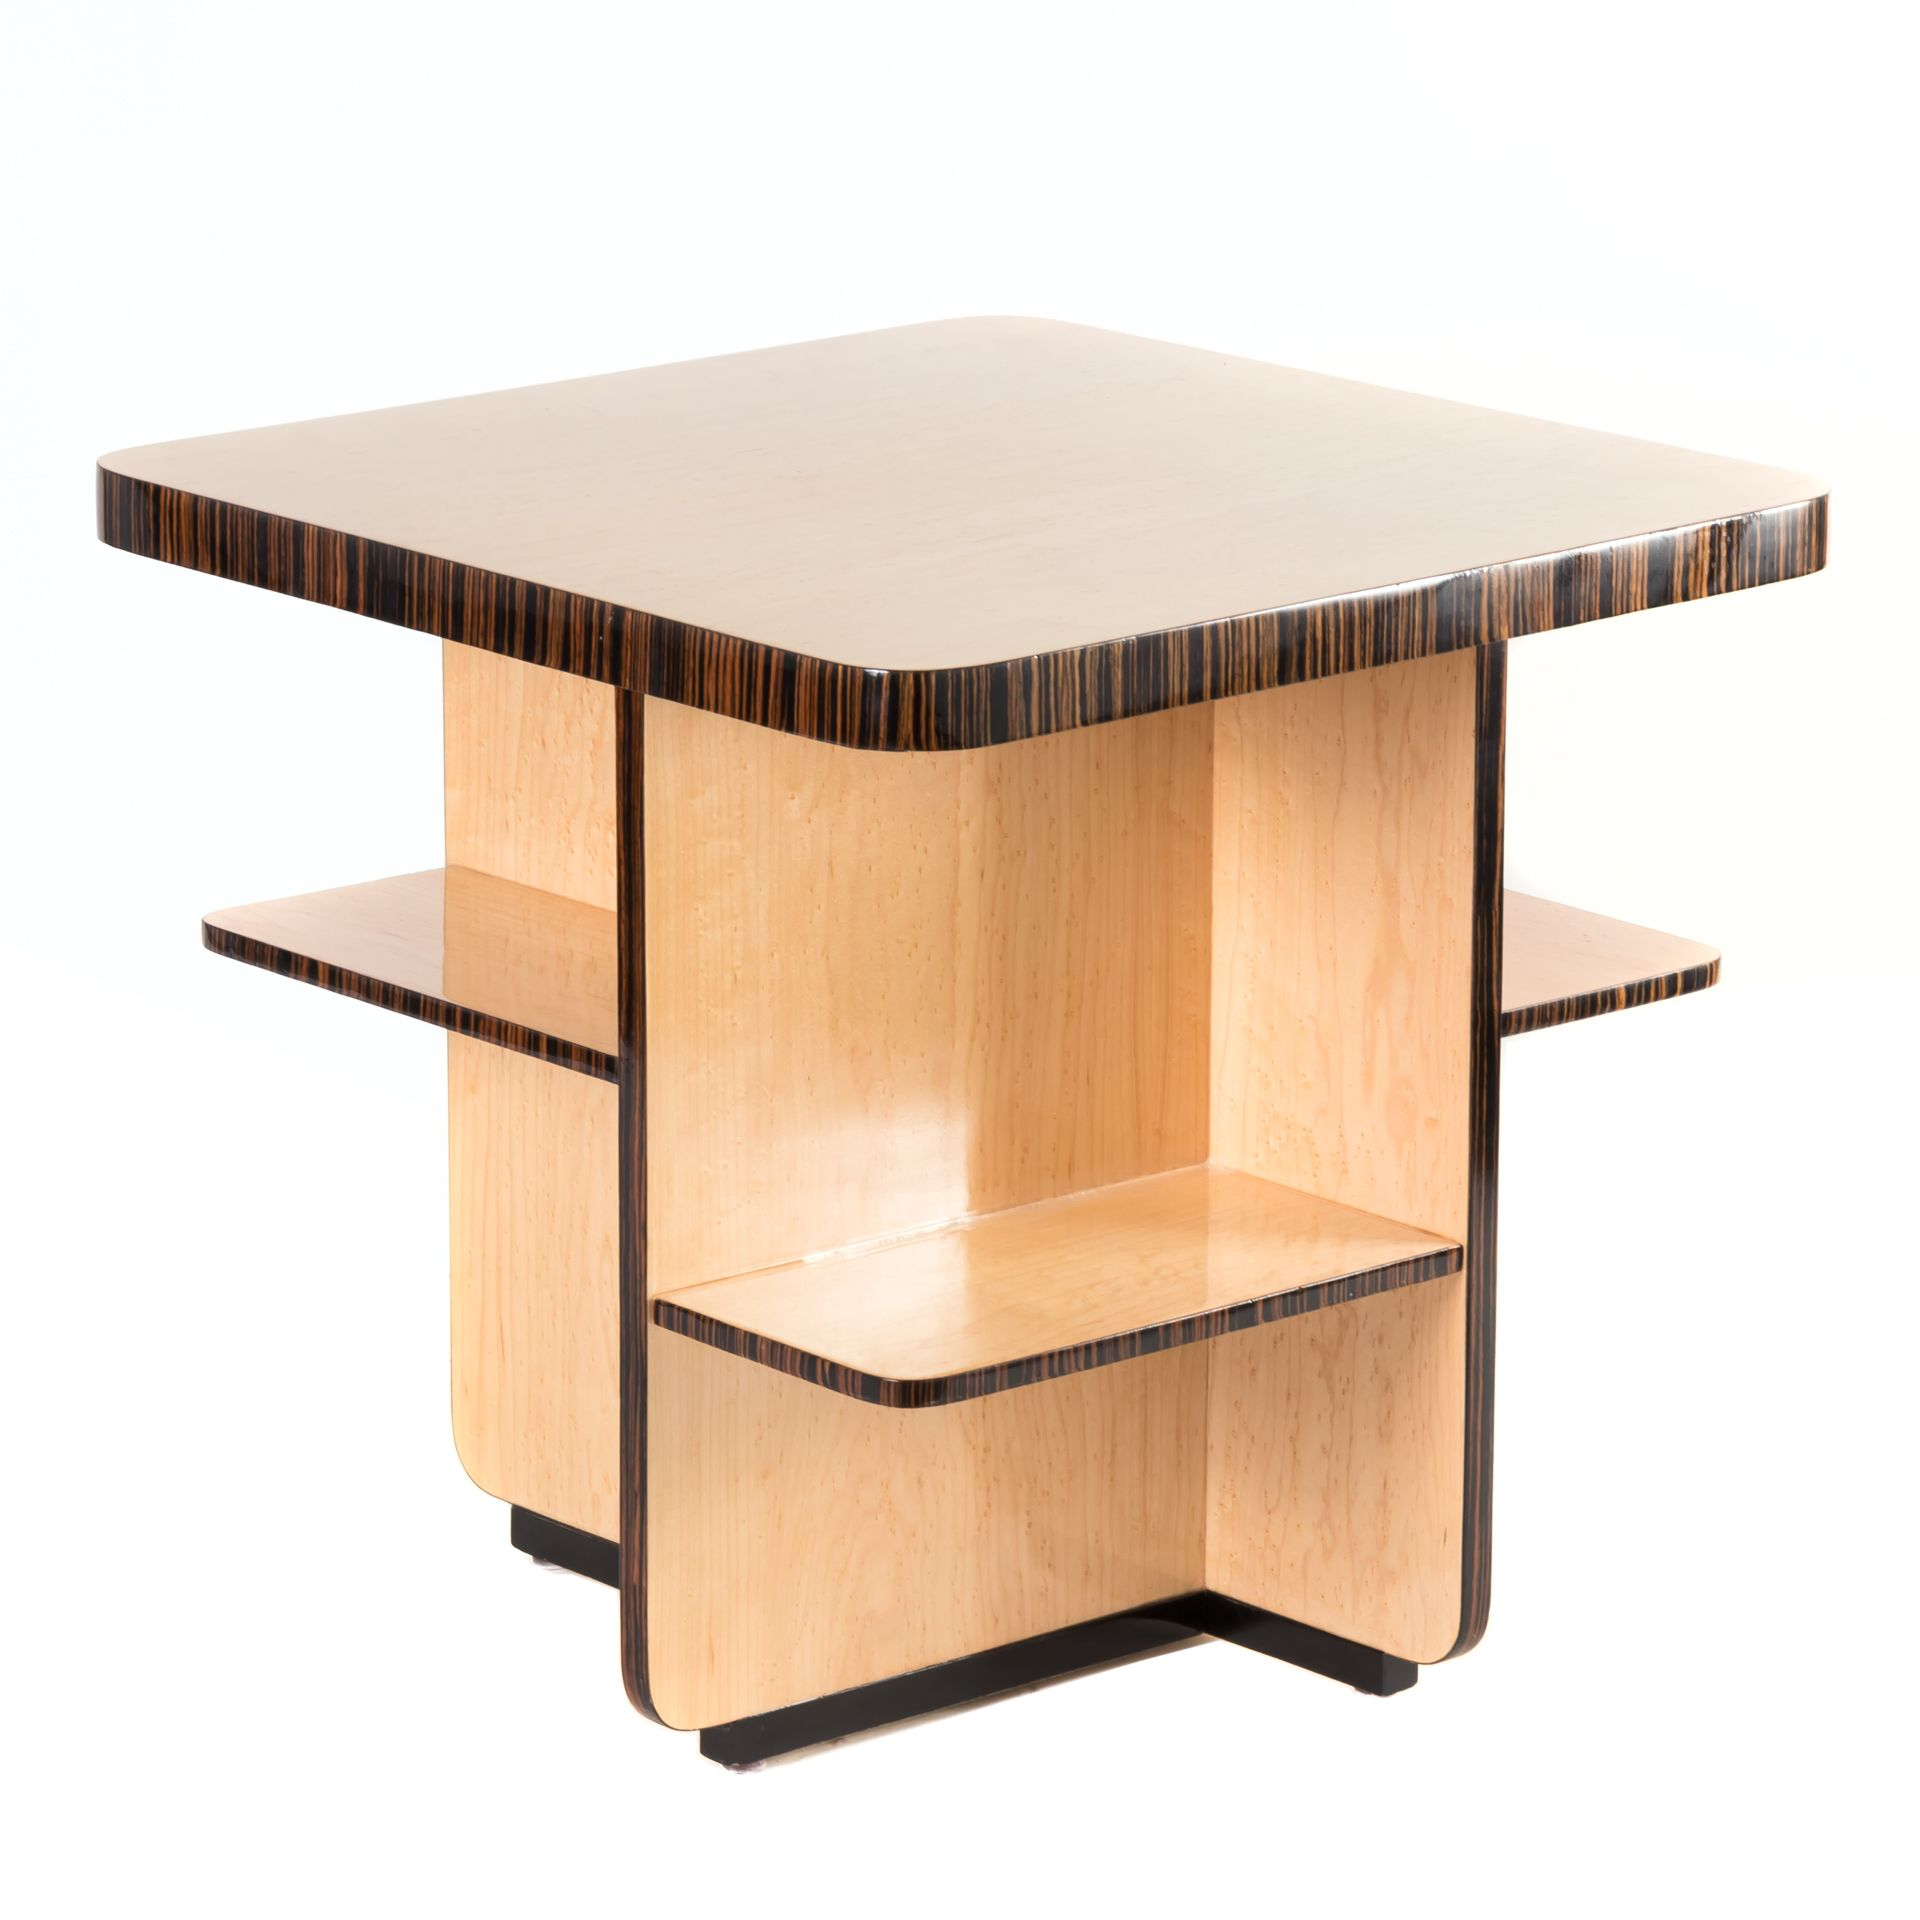 Show your style with this multishelf side table maple veneer